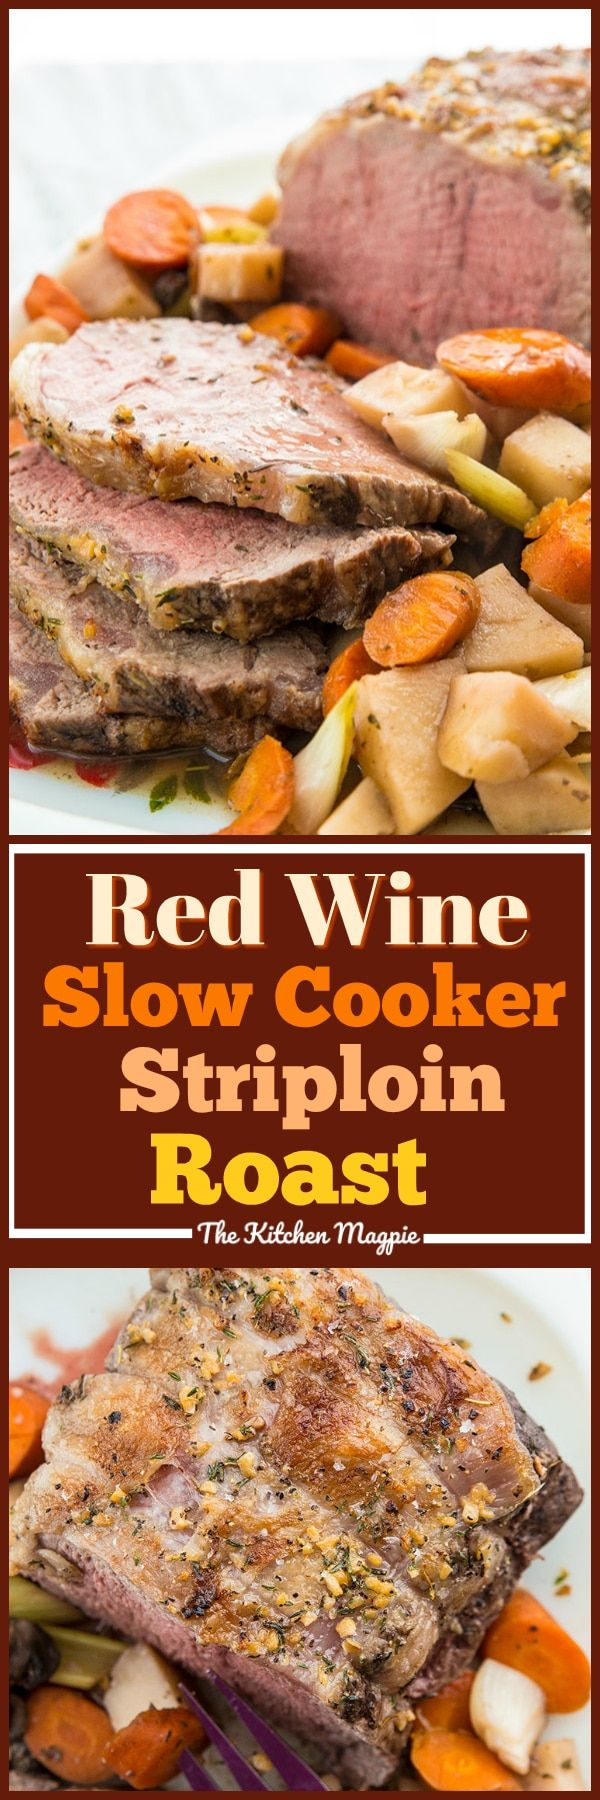 how to oven cook a striploin